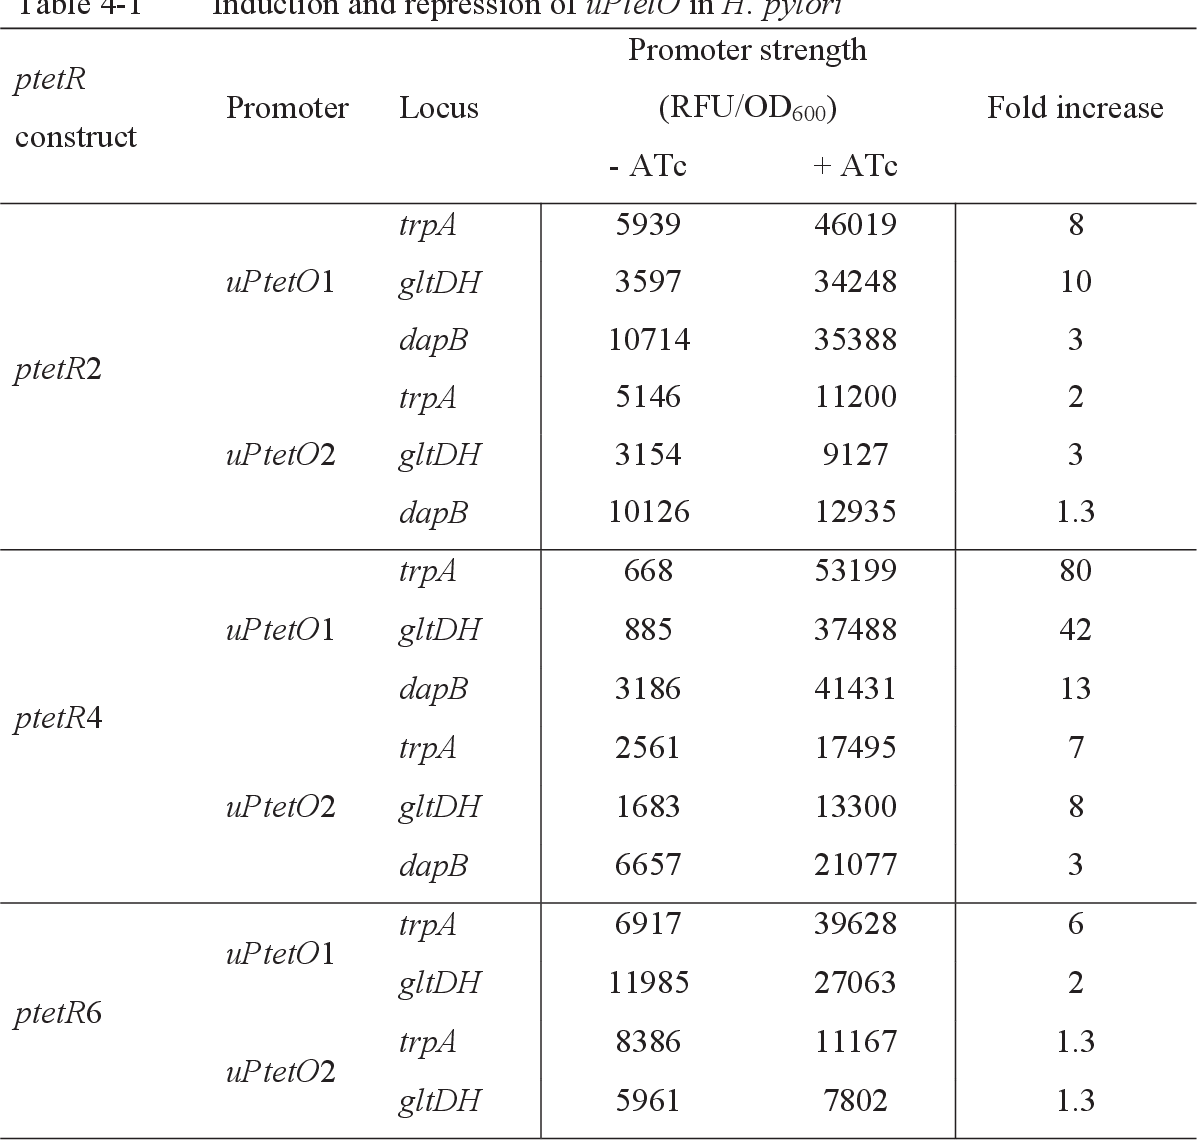 Table 4-1 Induction and repression of uPtetO in H. pylori